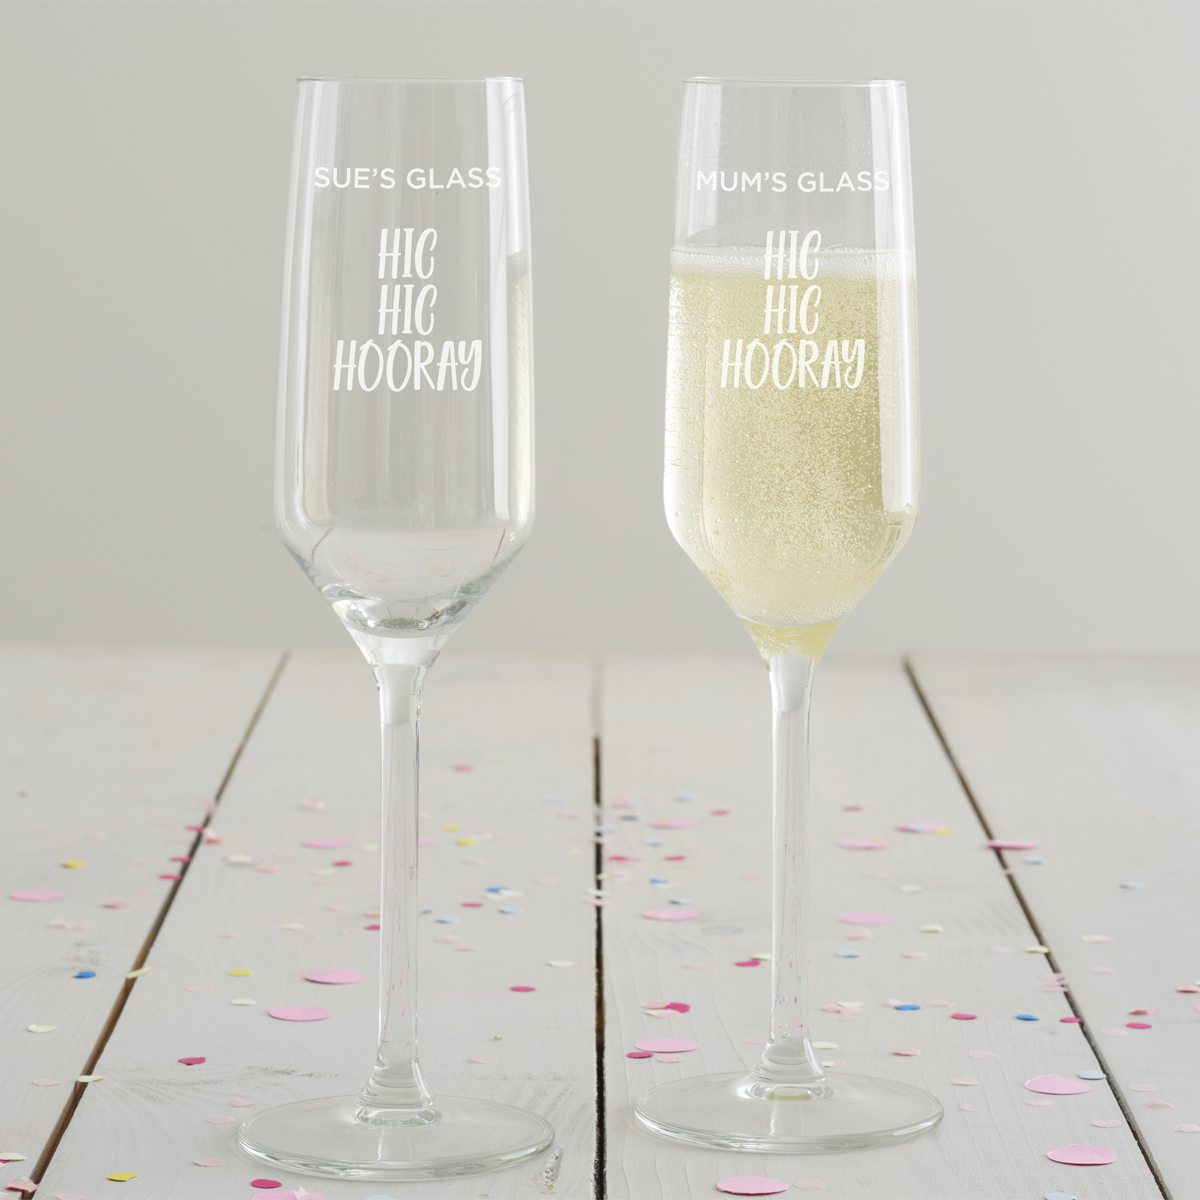 Personalised 'Hic Hic Hooray' Champagne Flute